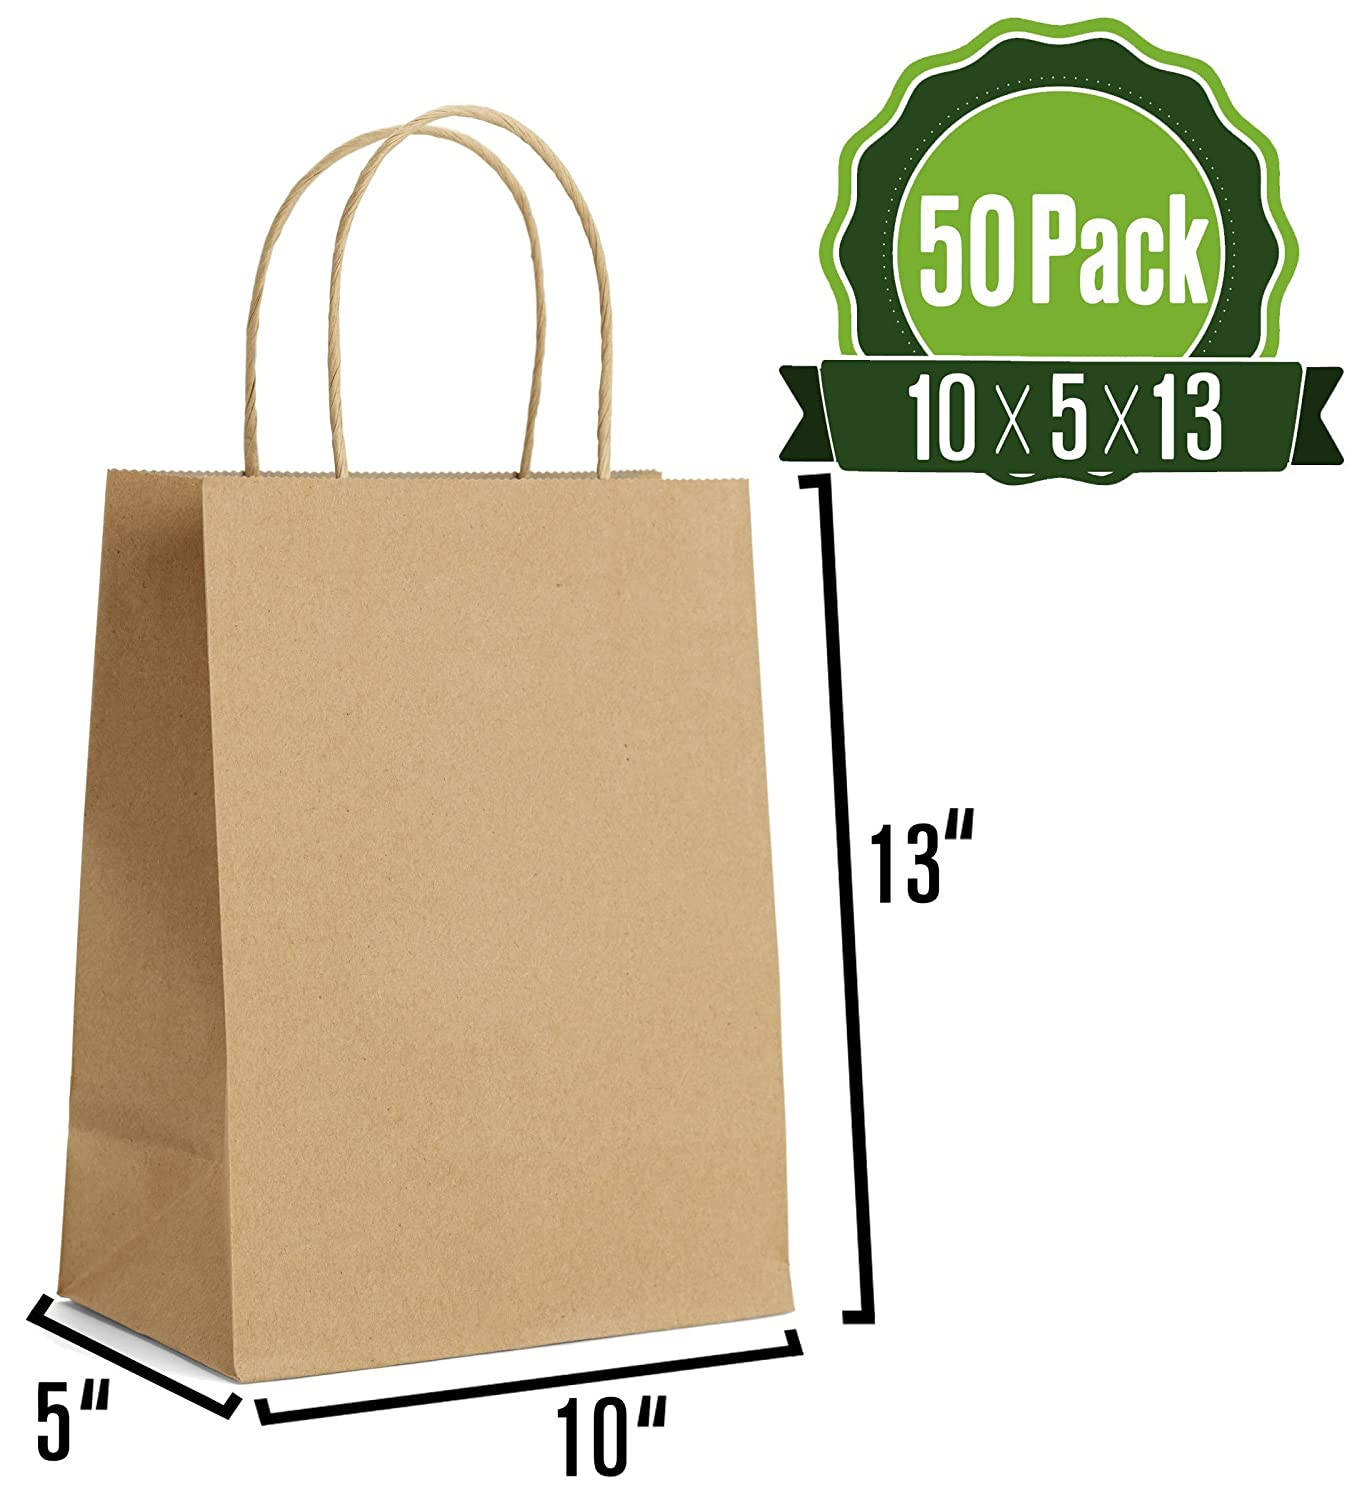 Amazon.com: Bolsas de regalo de papel kraft con asas [ideal ...